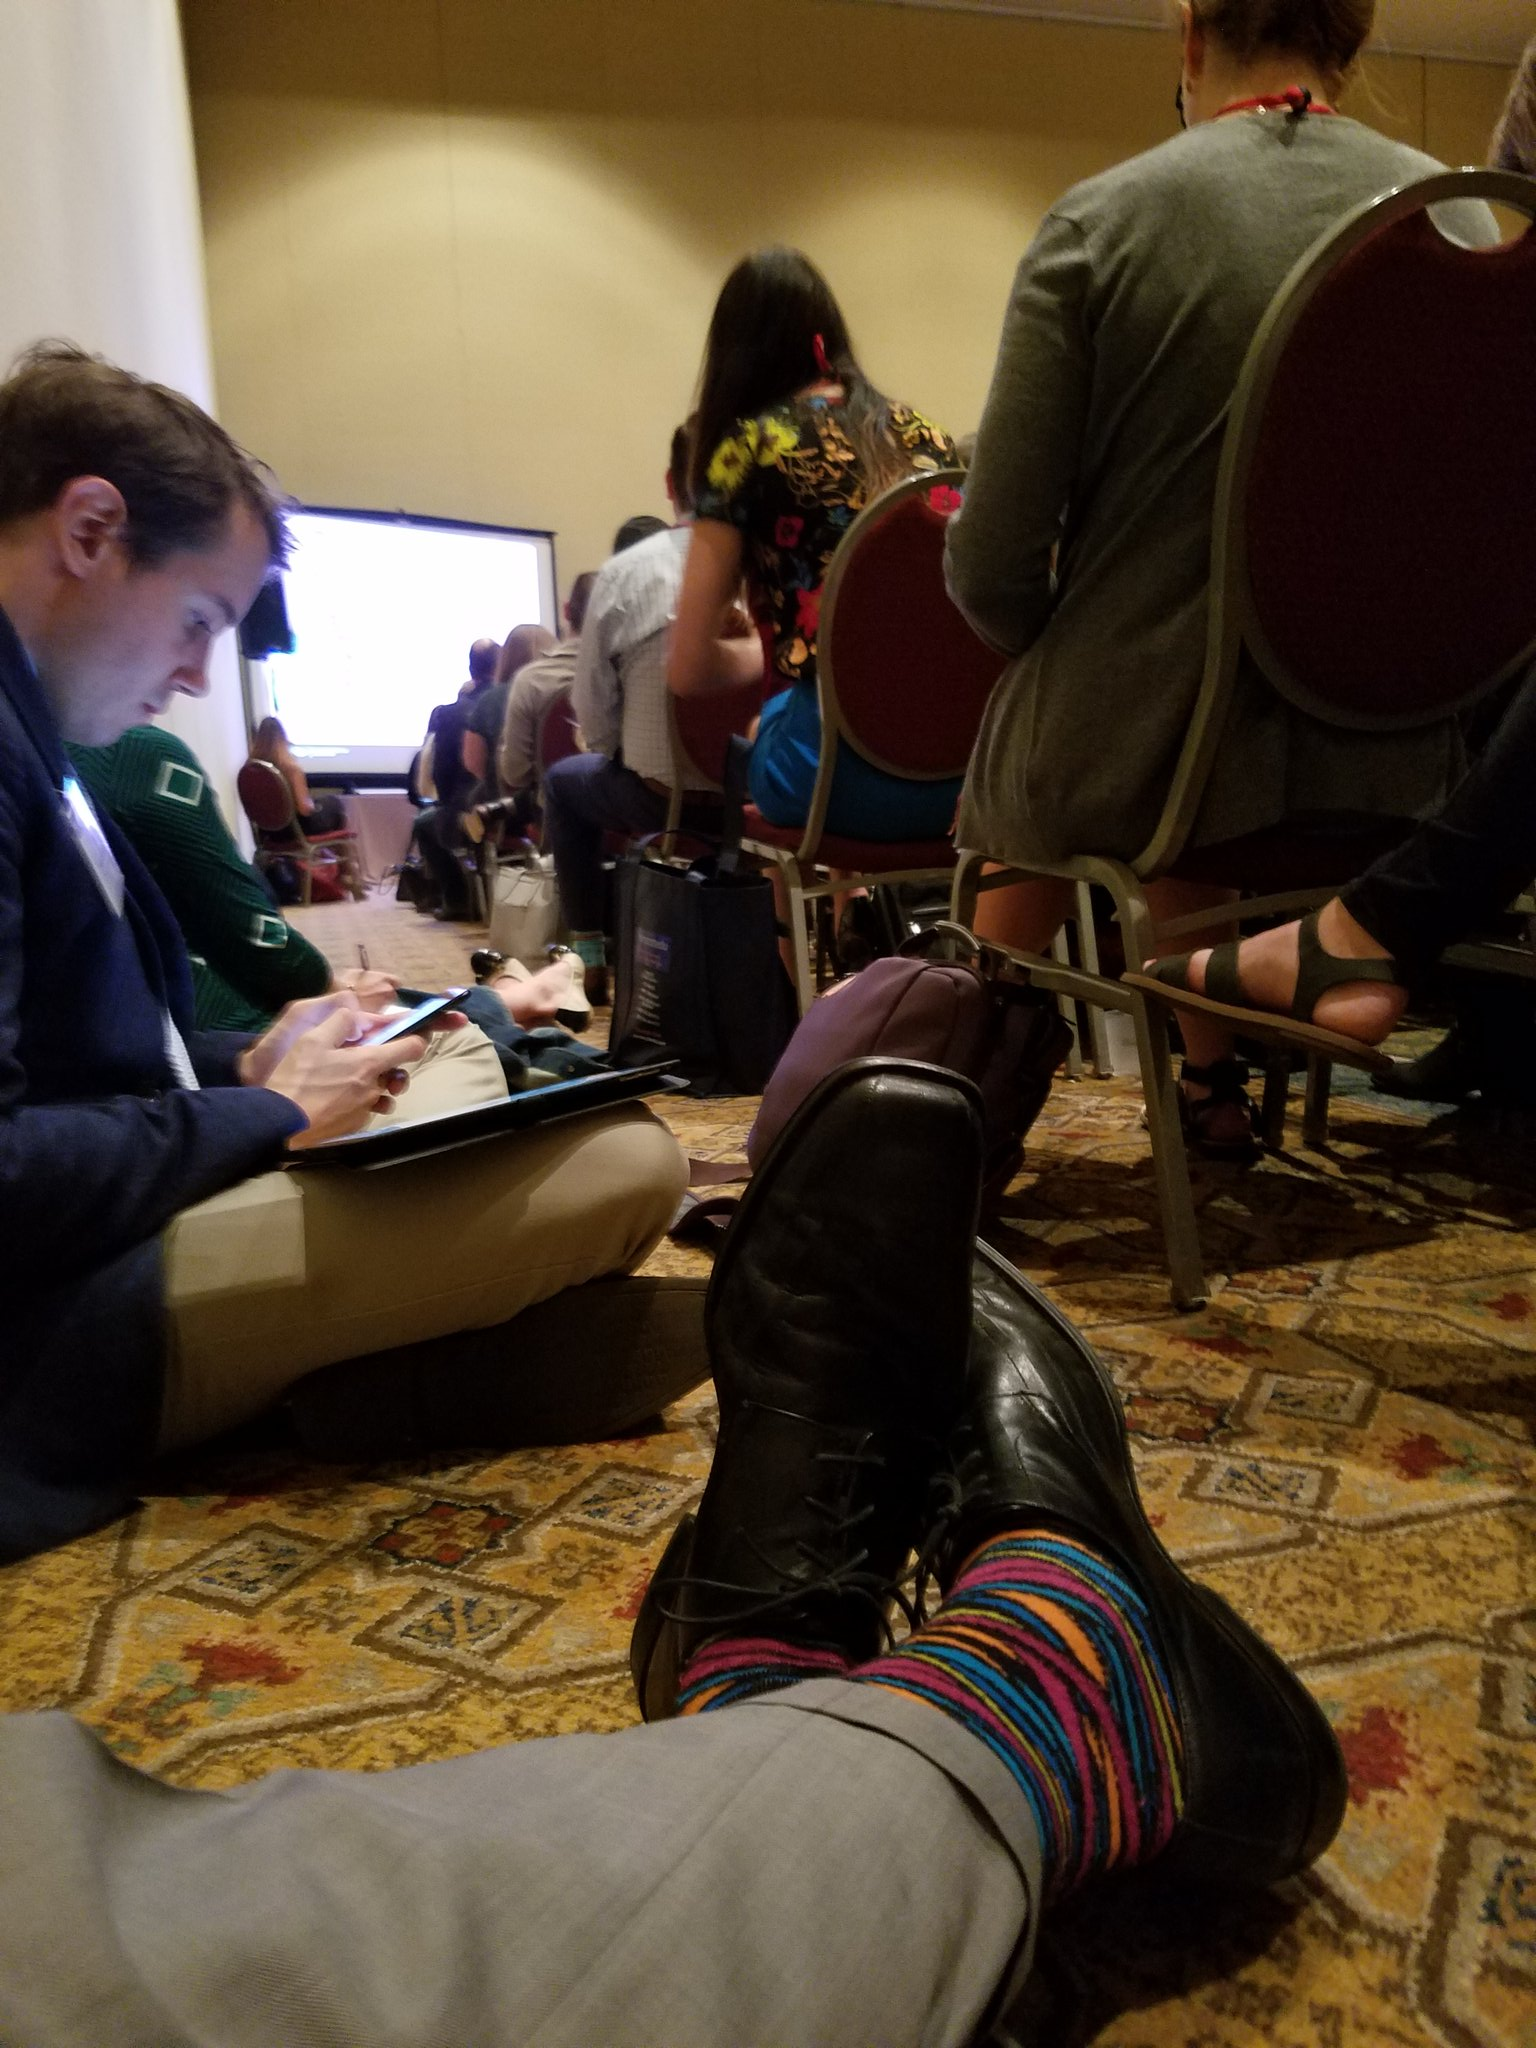 Overflow seating in Social Listening session. Those socks, though . . . #AMAHigherEd https://t.co/YmxYXQl3ZM